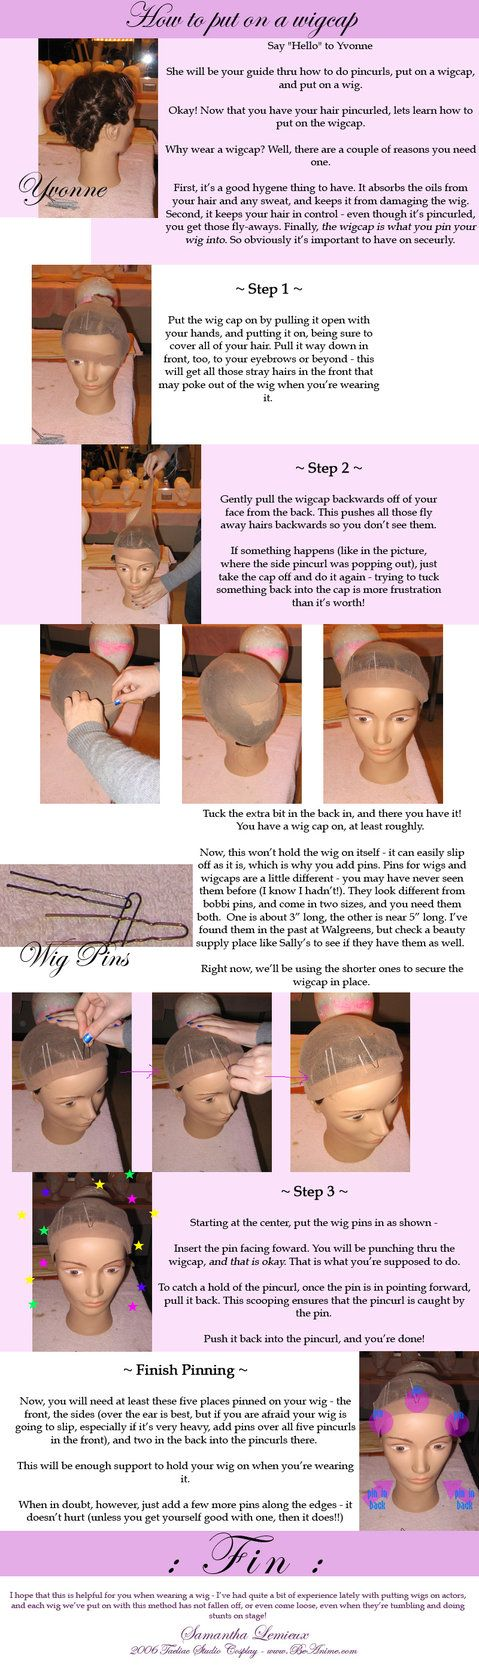 Tutorial: How to put on wigcap by taeliac on DeviantArt